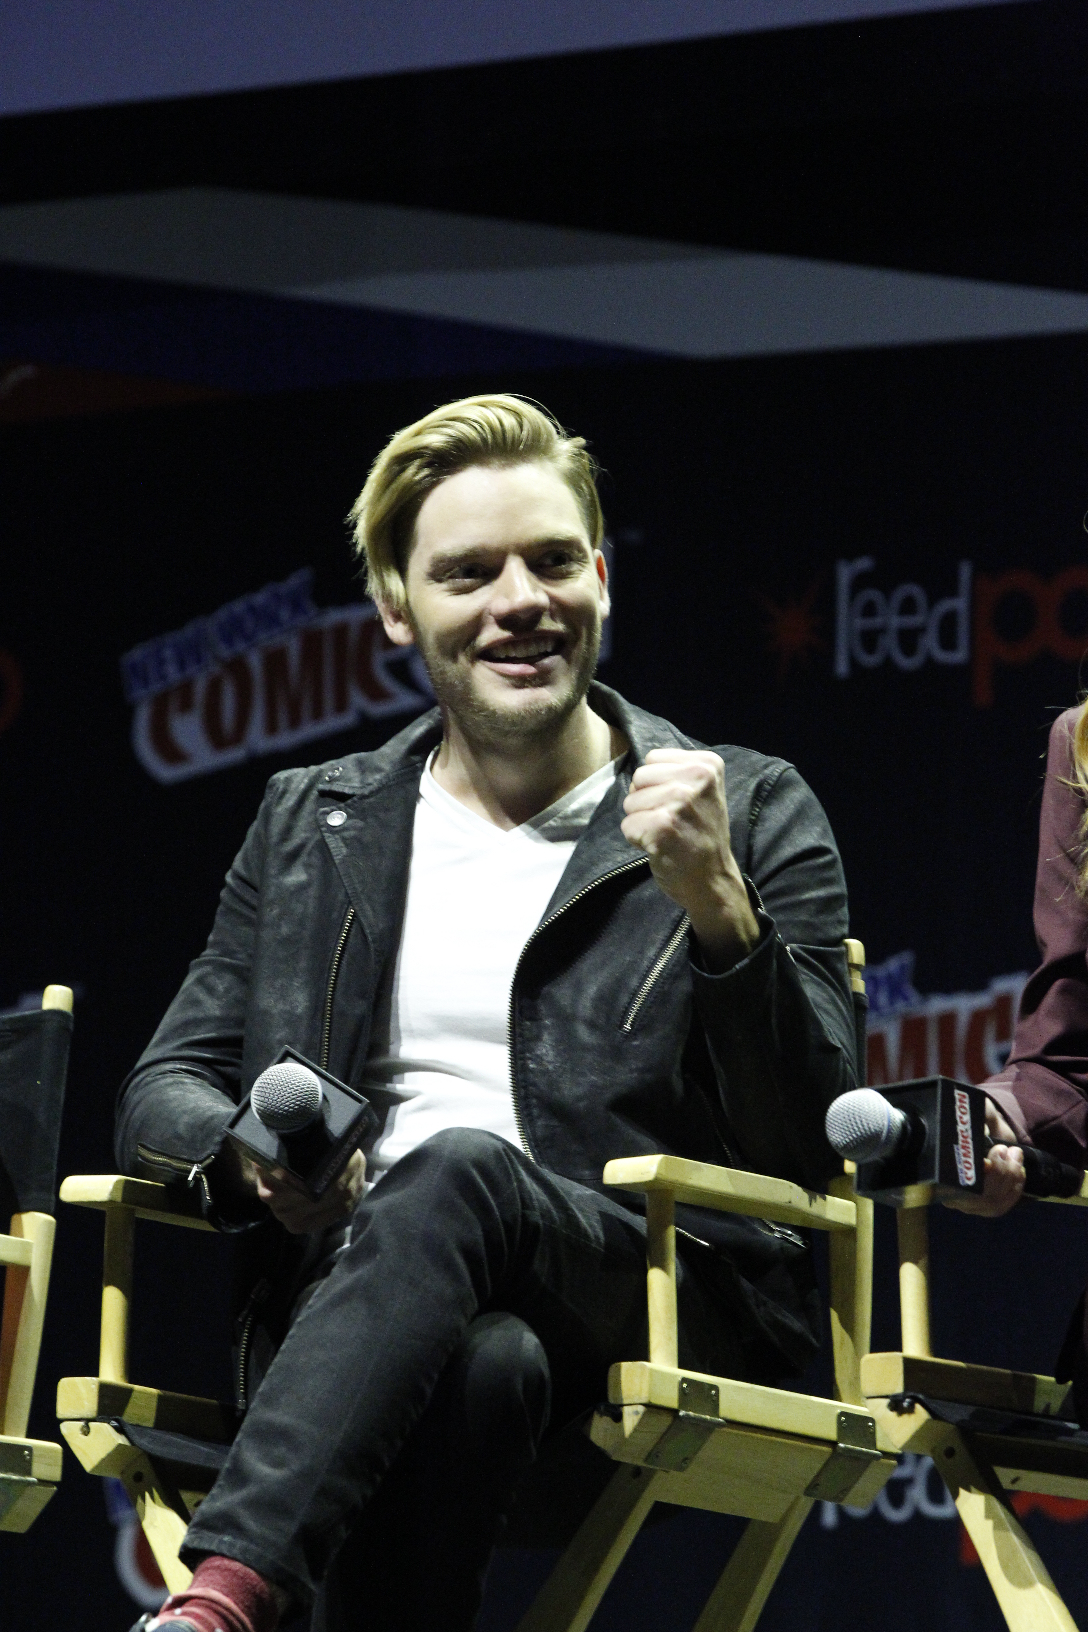 Shadowhunters - The Shadowhunters Stars Were At NYCC And We've Got The Photos To Prove It! - 1016